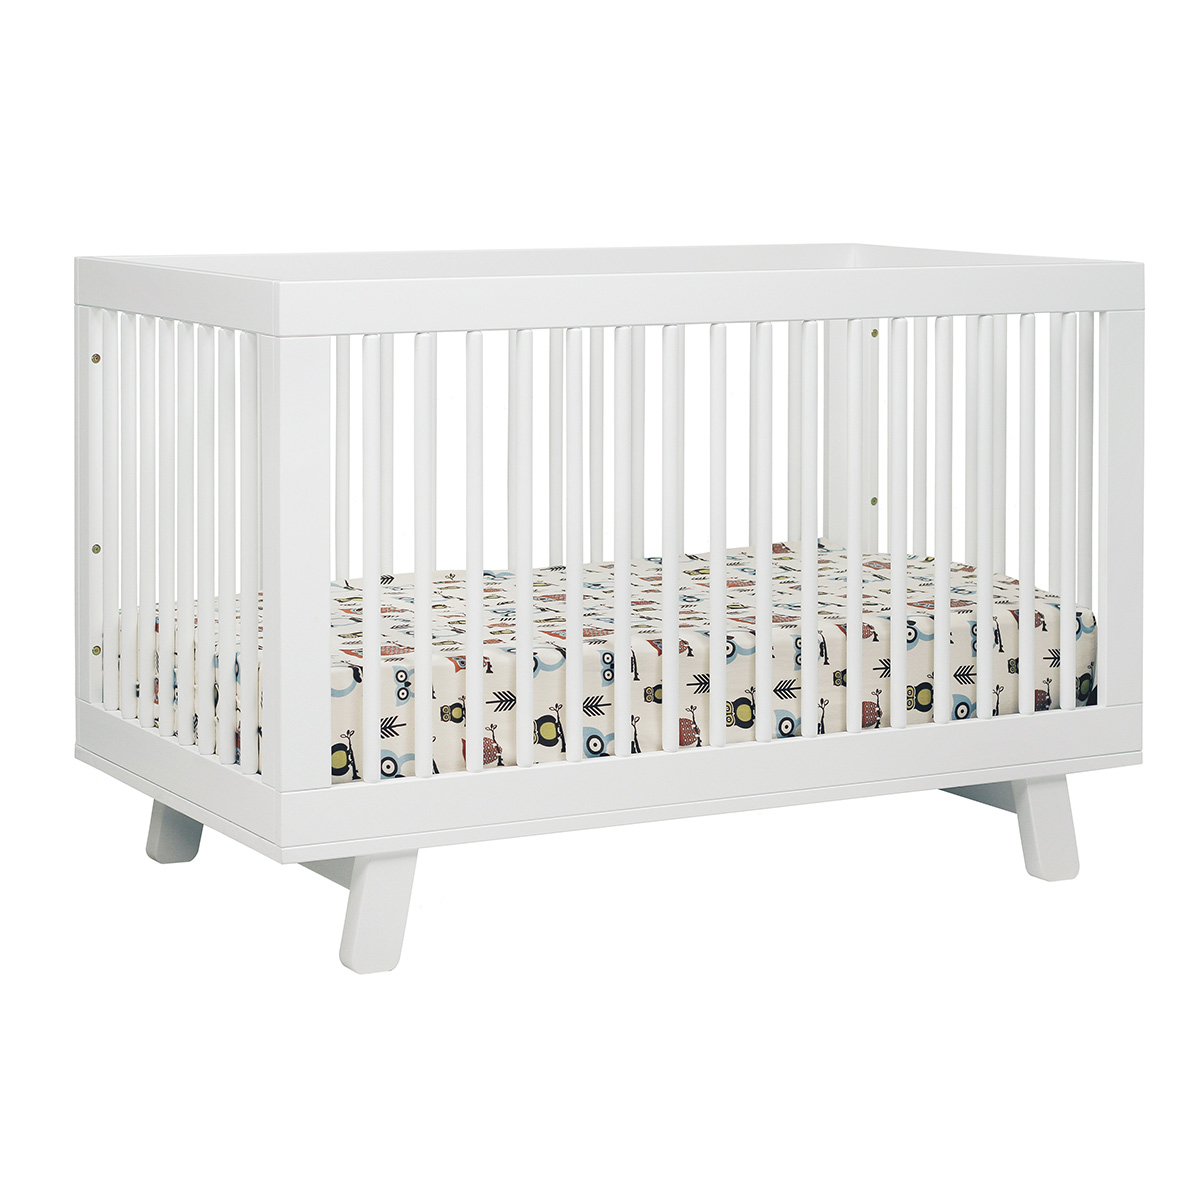 Babyletto hudson 3 in 1 convertible crib in white free shipping